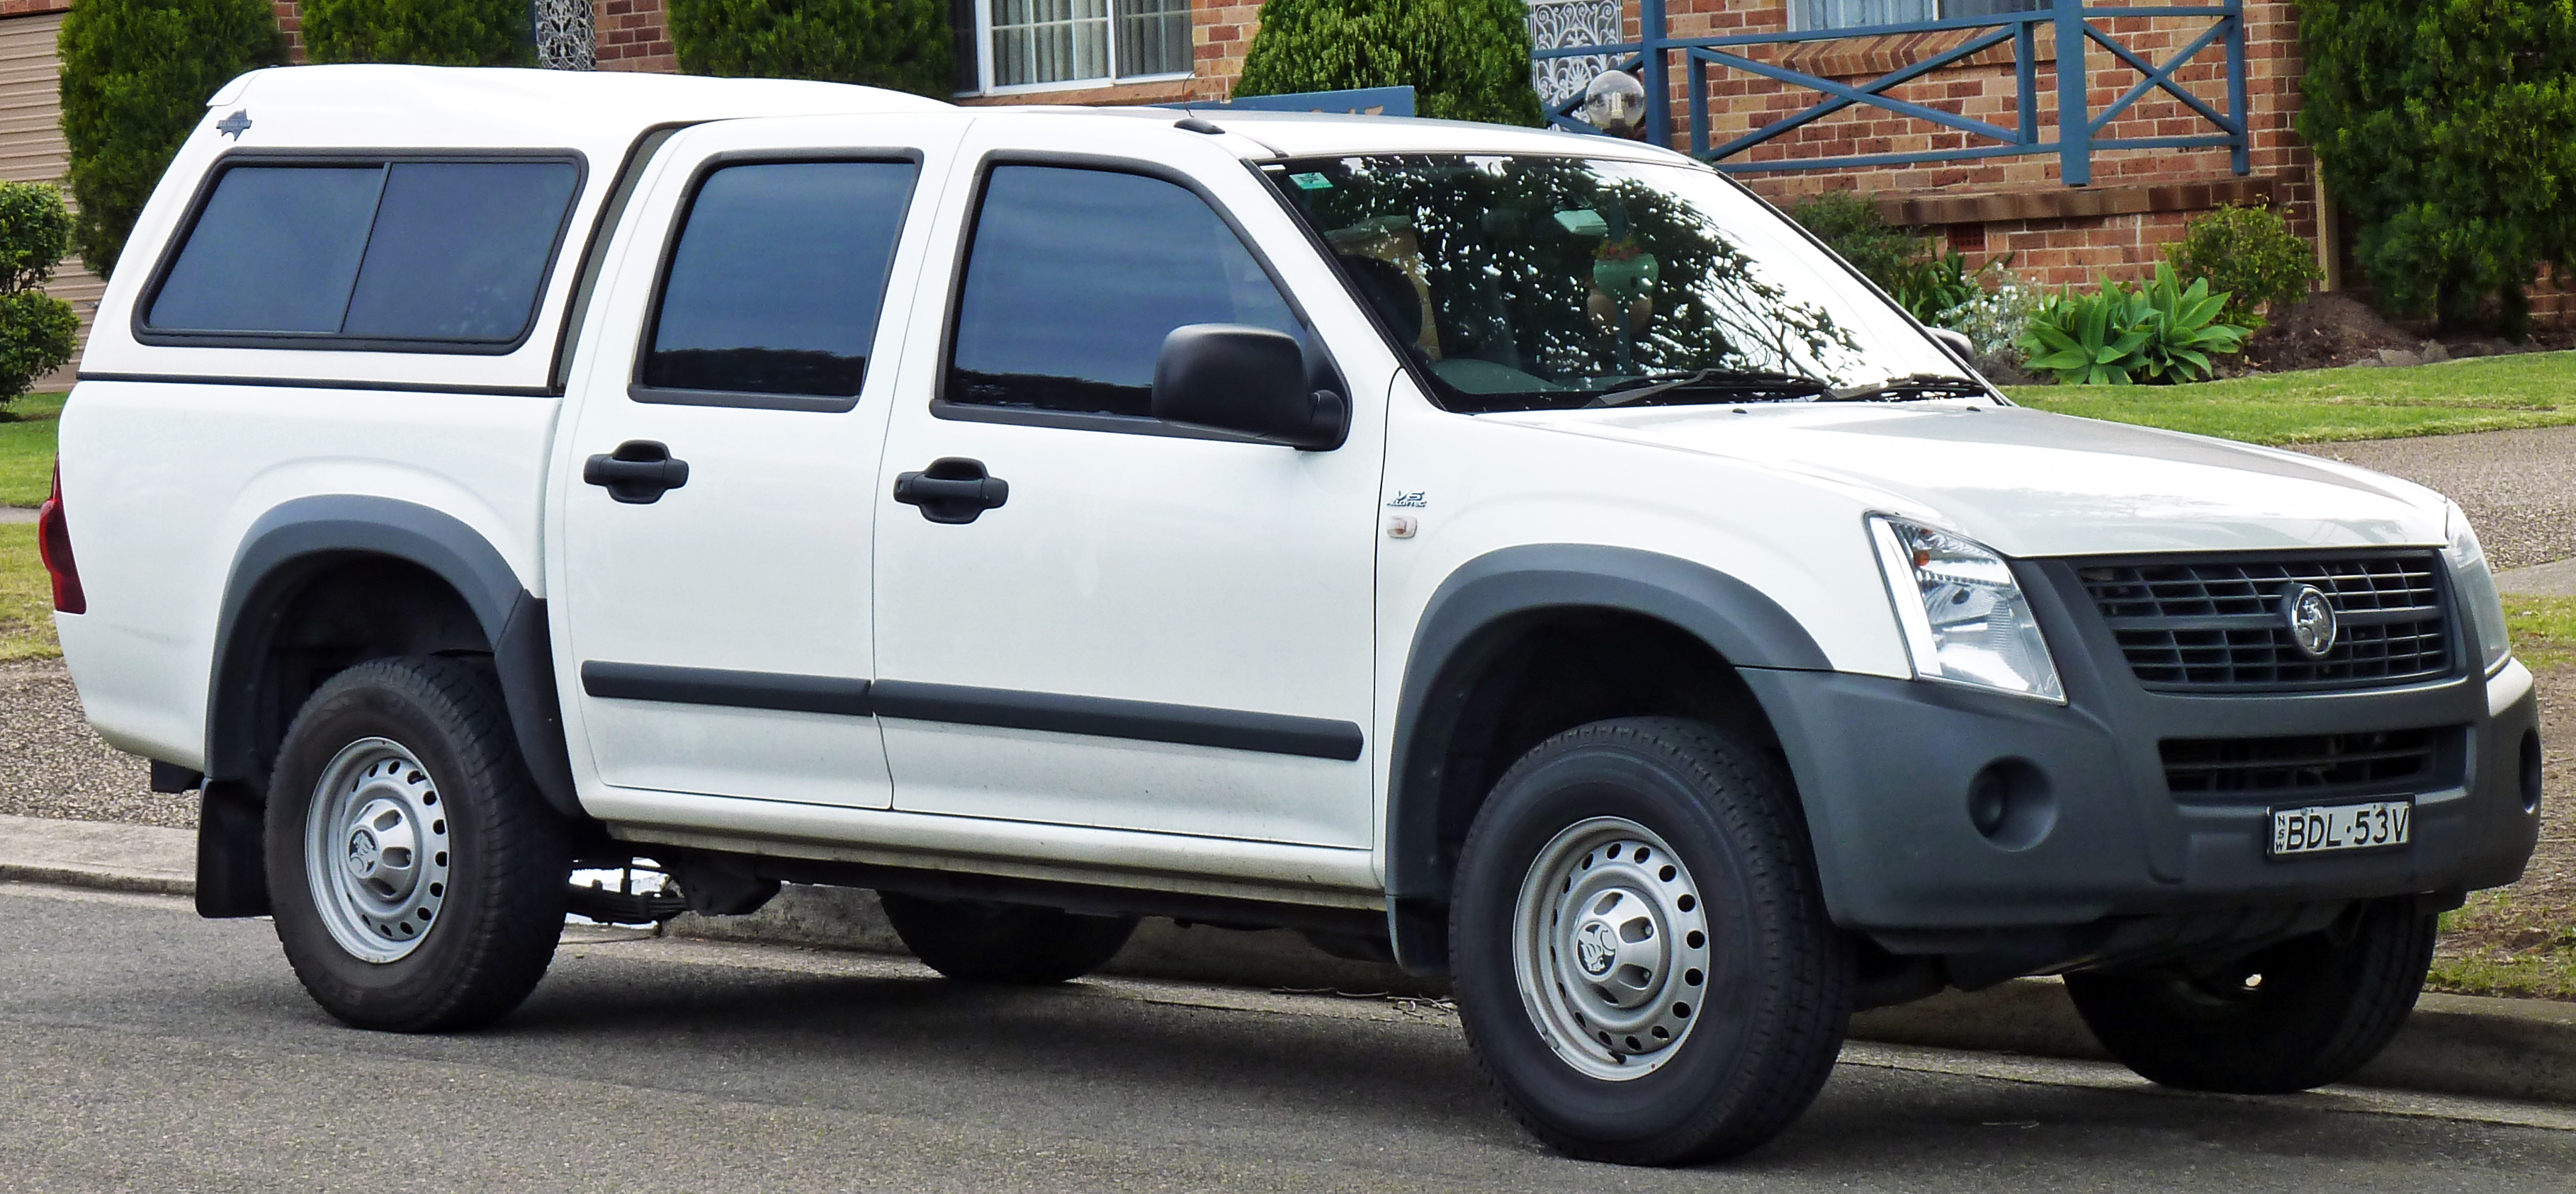 File:2007-2008 Holden RA Rodeo LX Crew Cab 4-door utility 01